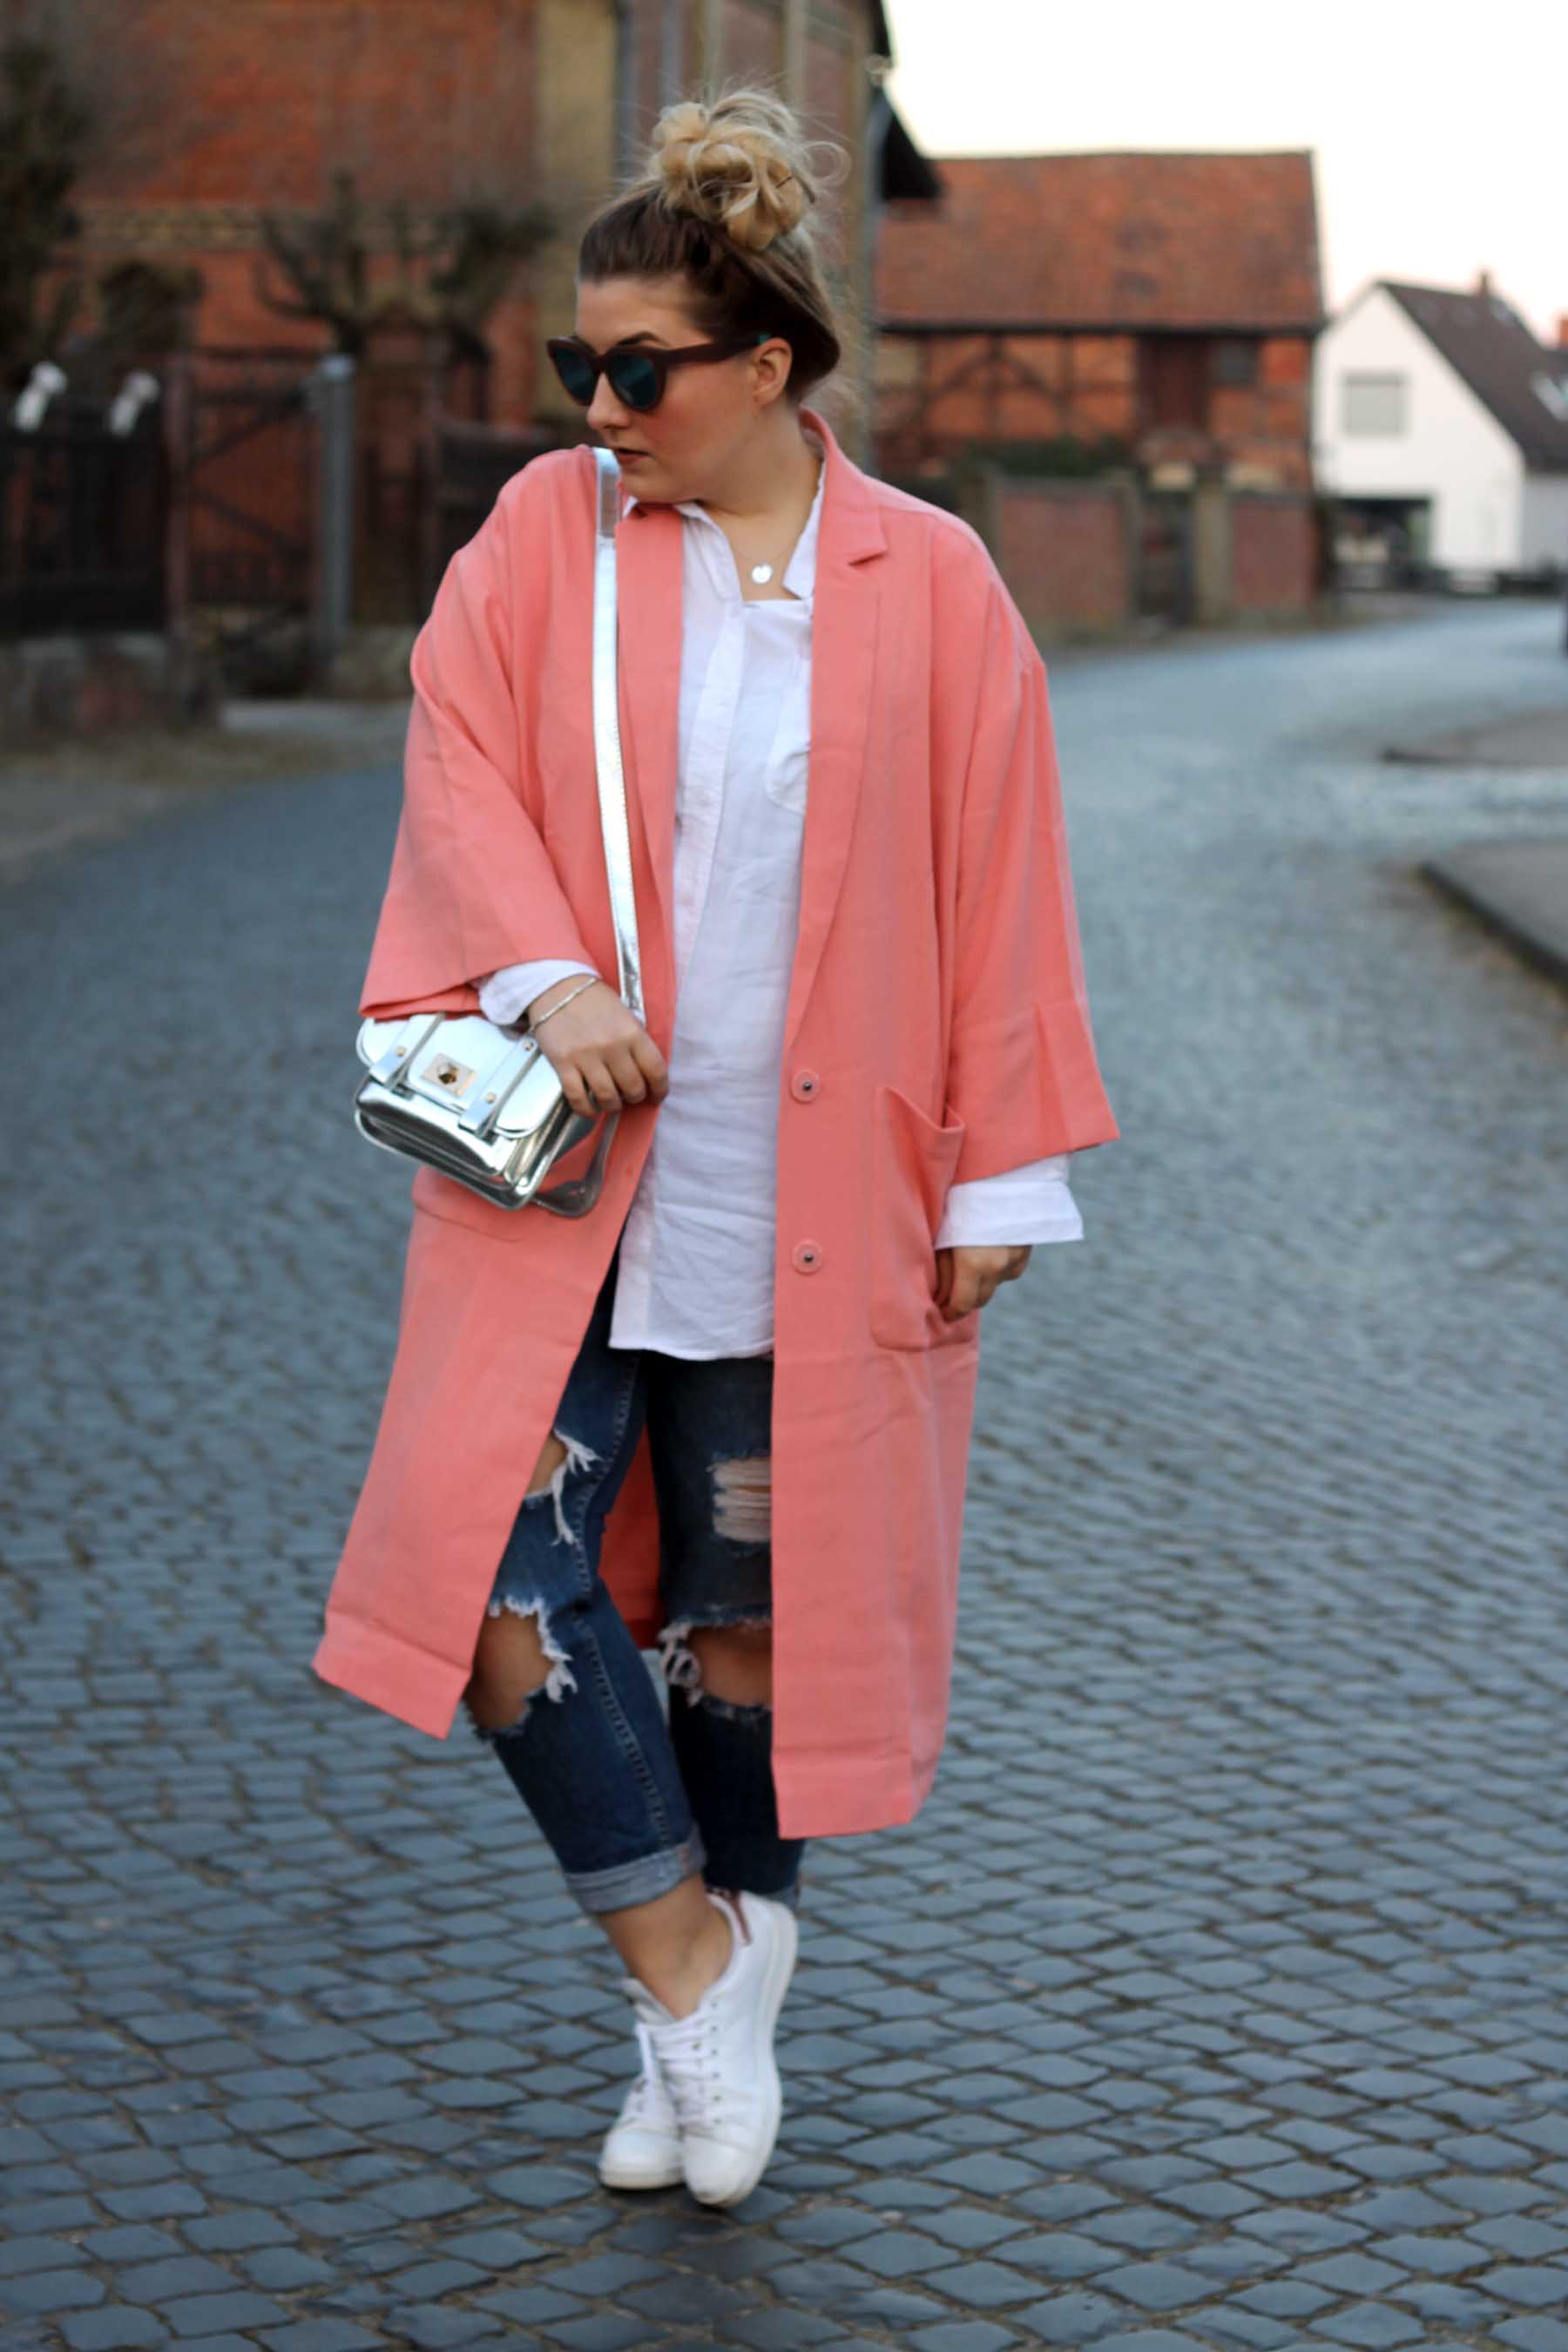 rosa-pinker-mantel-outfit-look-style-modeblog